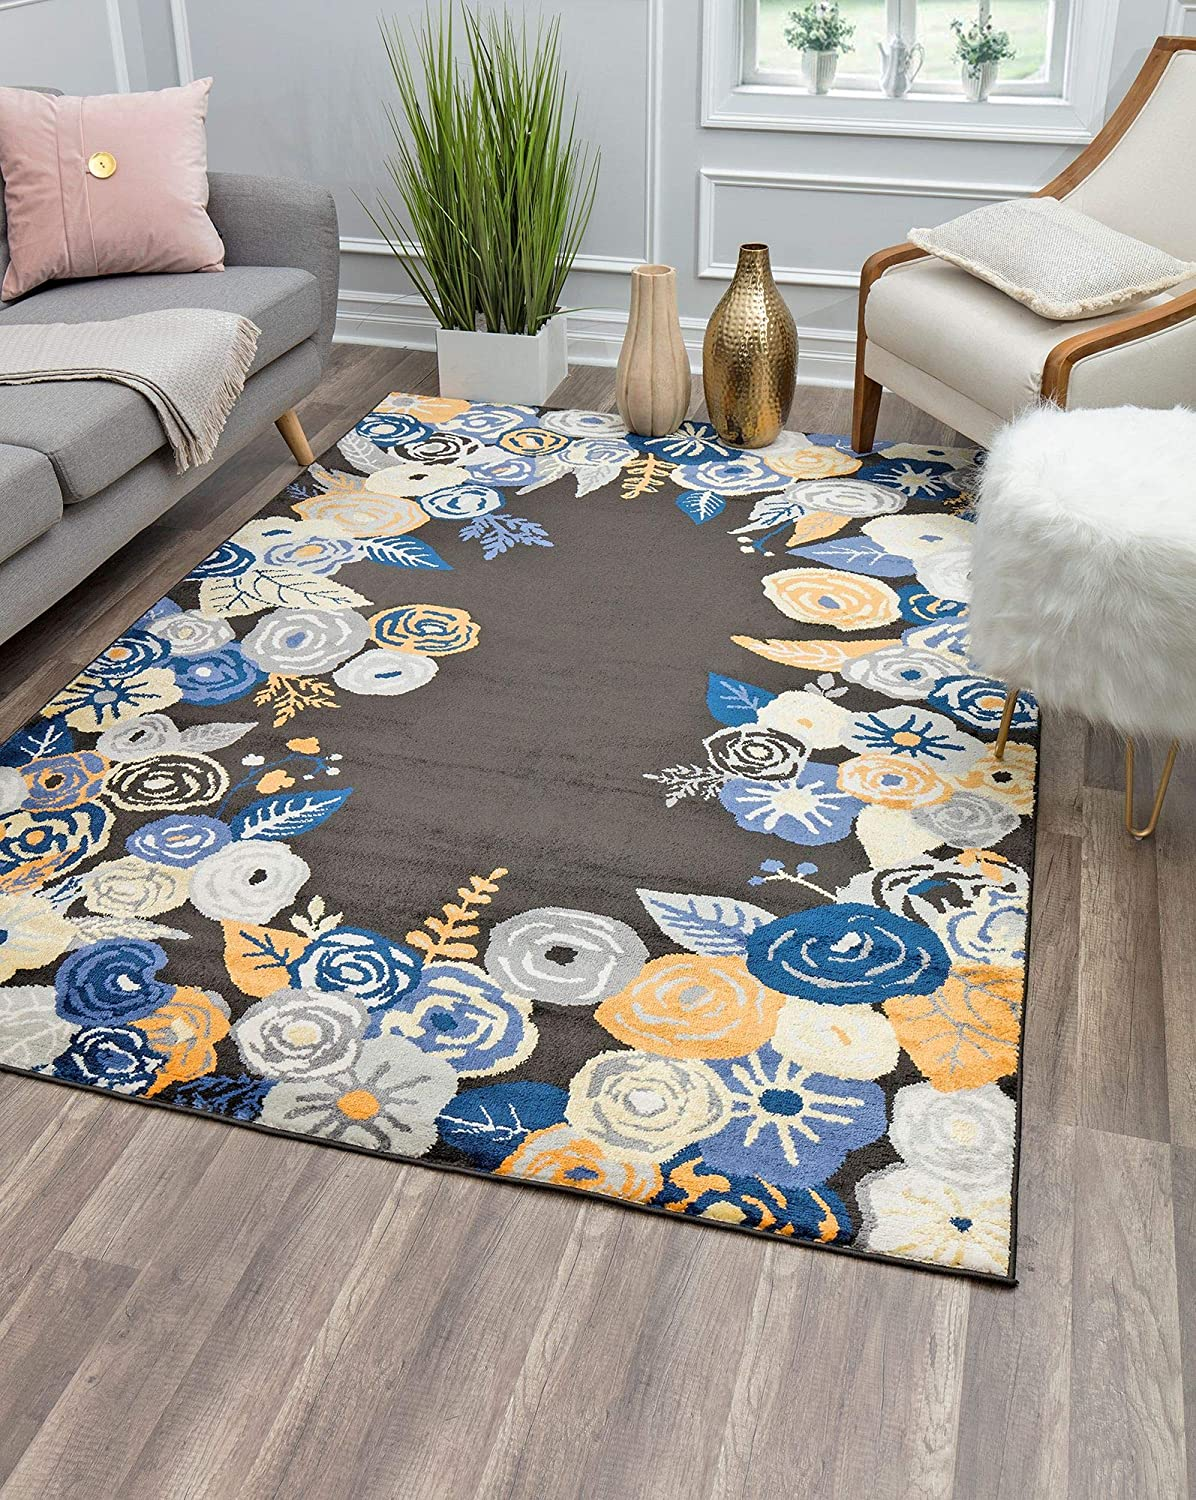 Rugs America VA35A Royal Blossom Golden Onyx Transitional Floral Area Rug 9' x 12'